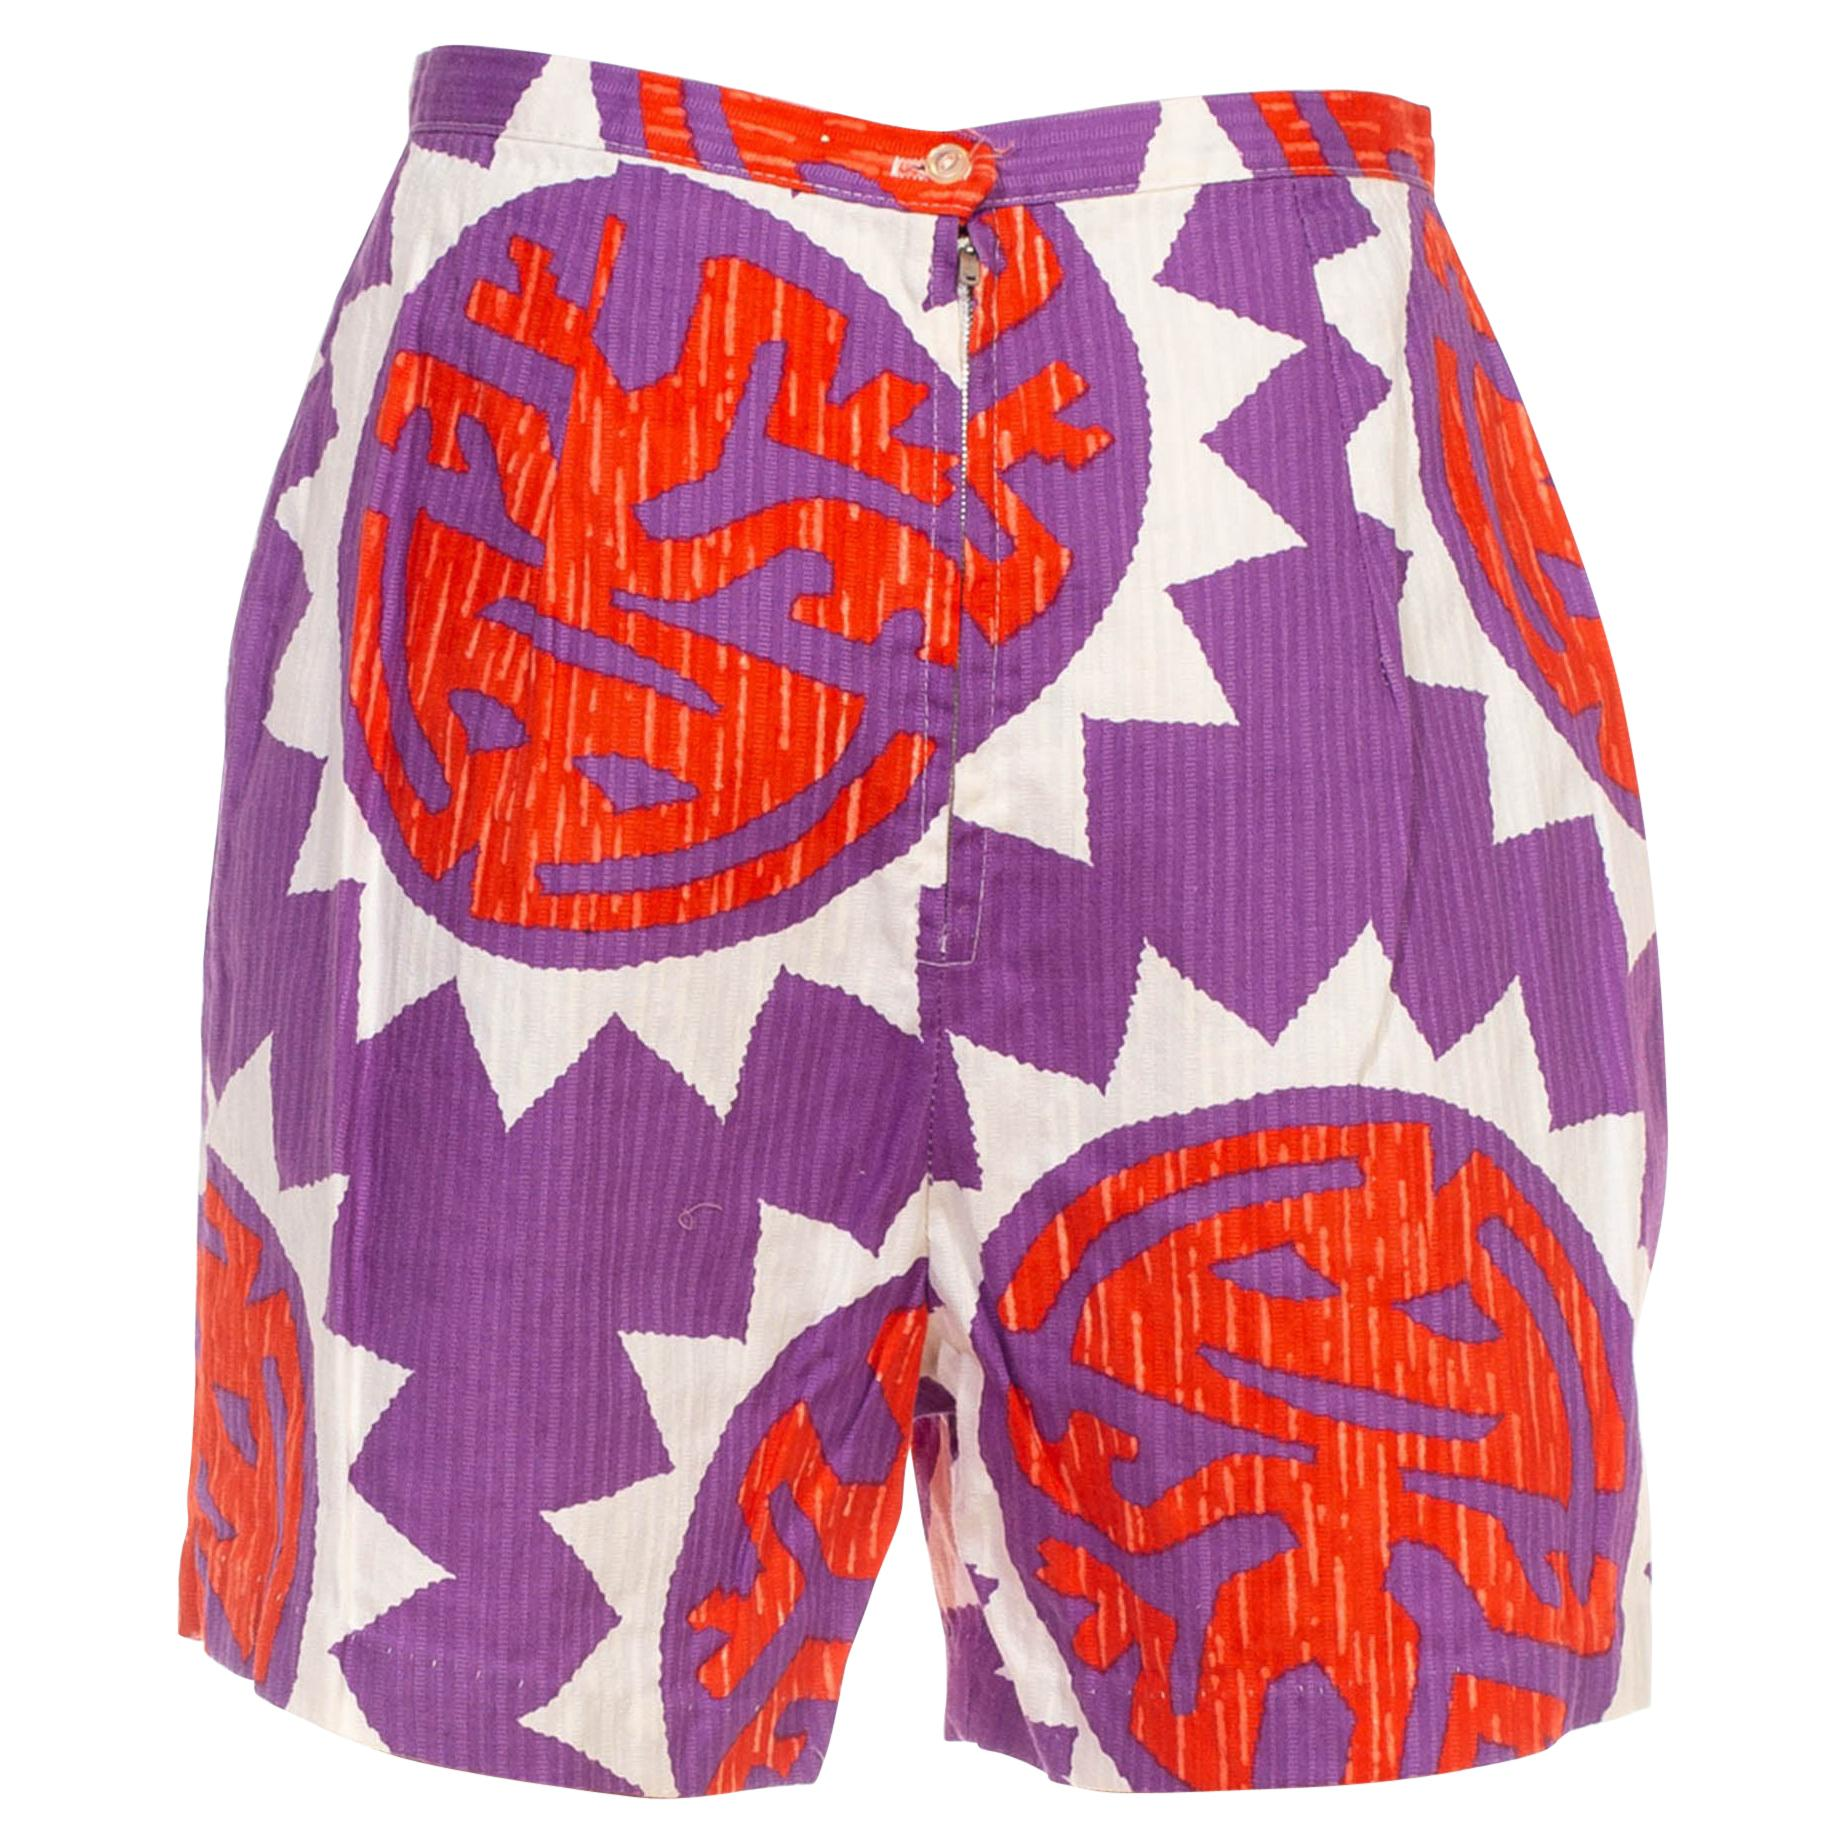 1950S Purple & Red Cotton Shorts